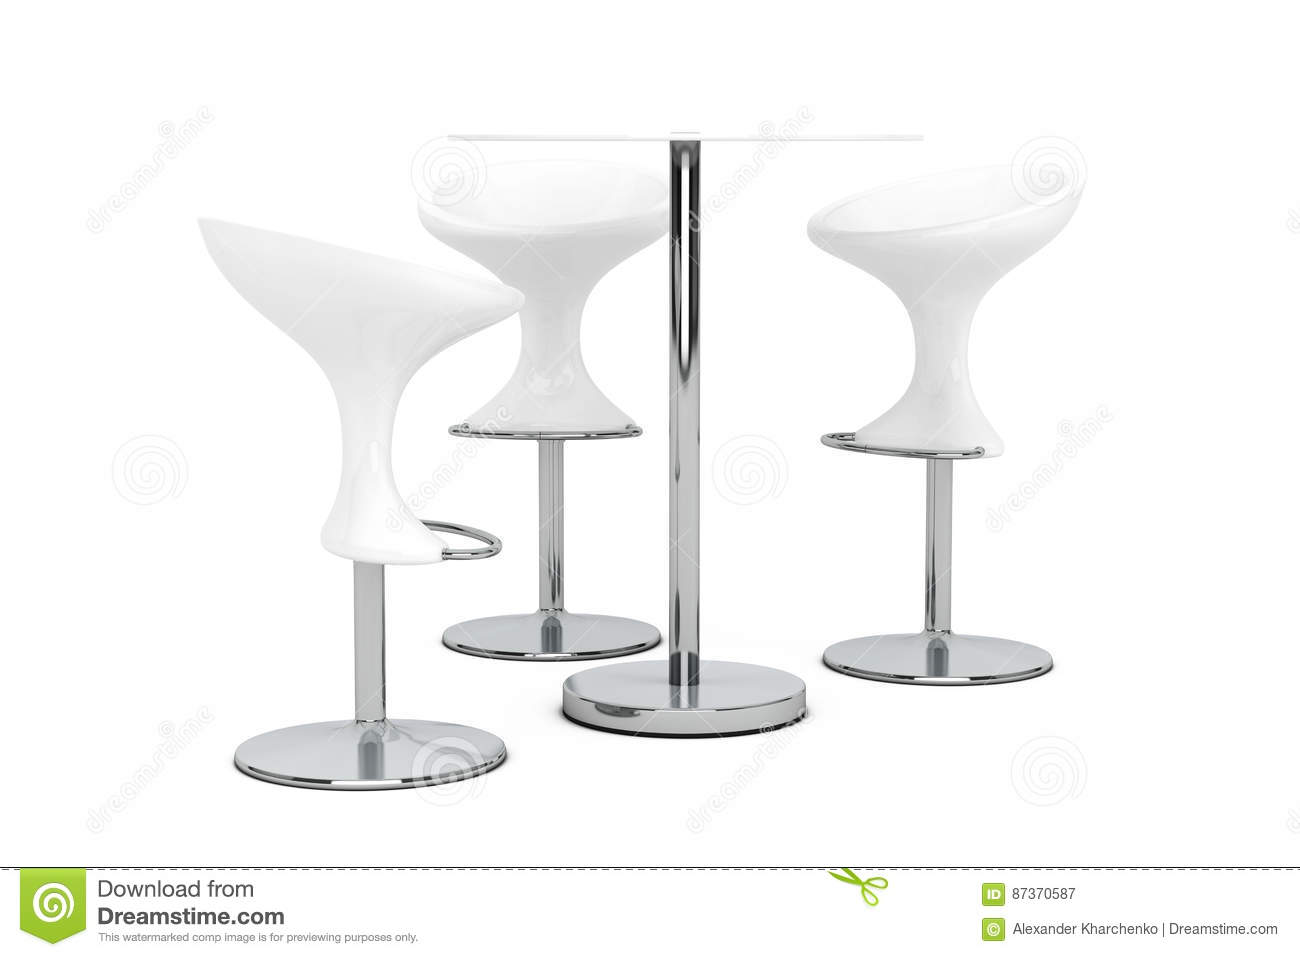 Image of: White Bar Modern Stools With Table 3d Rendering Stock Illustration Illustration Of Icon Comfort 87370587